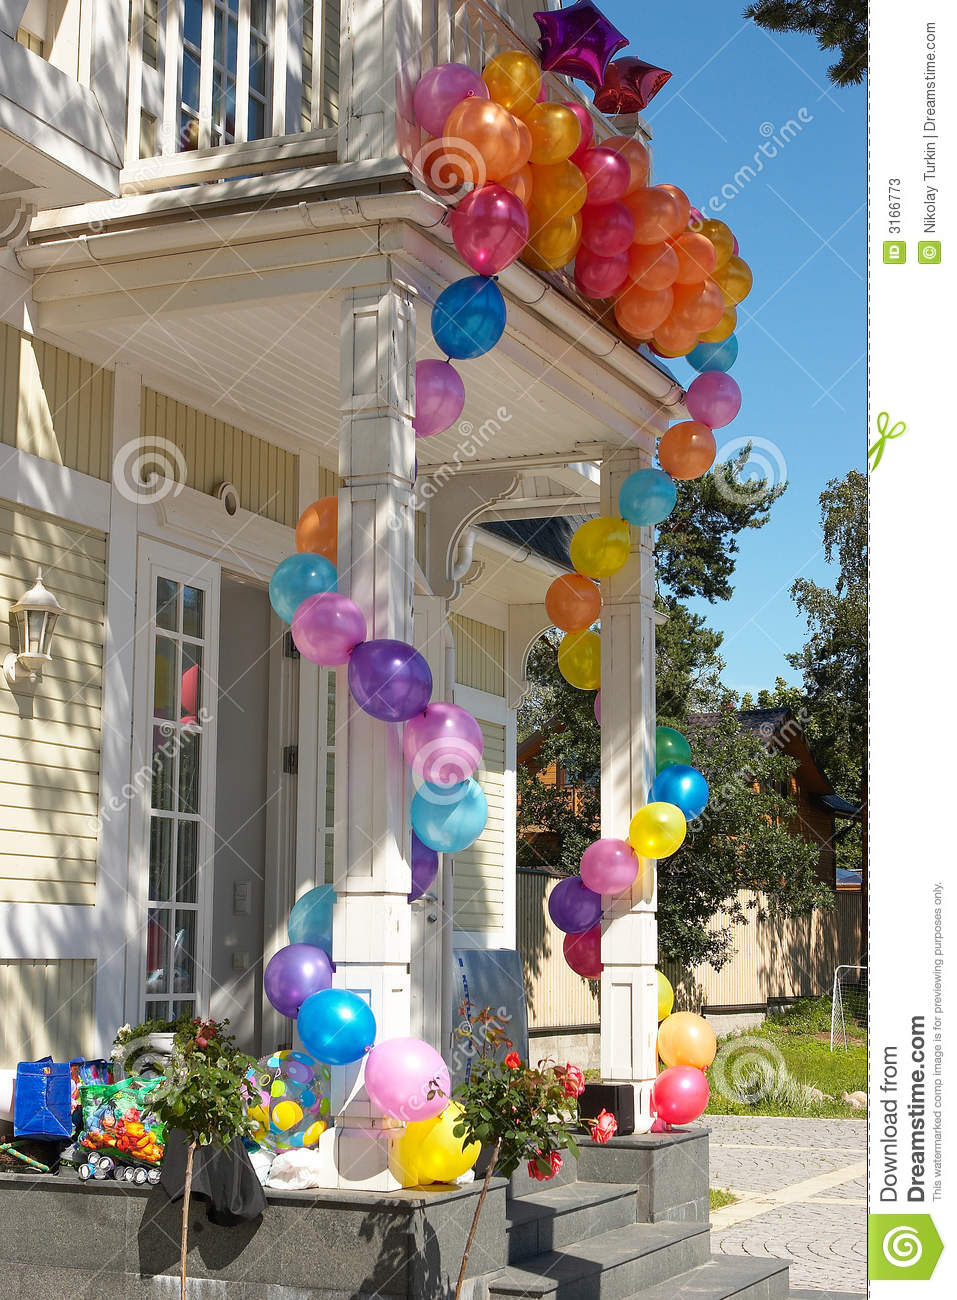 The House With Balloons 5 Stock Image Image Of Colours